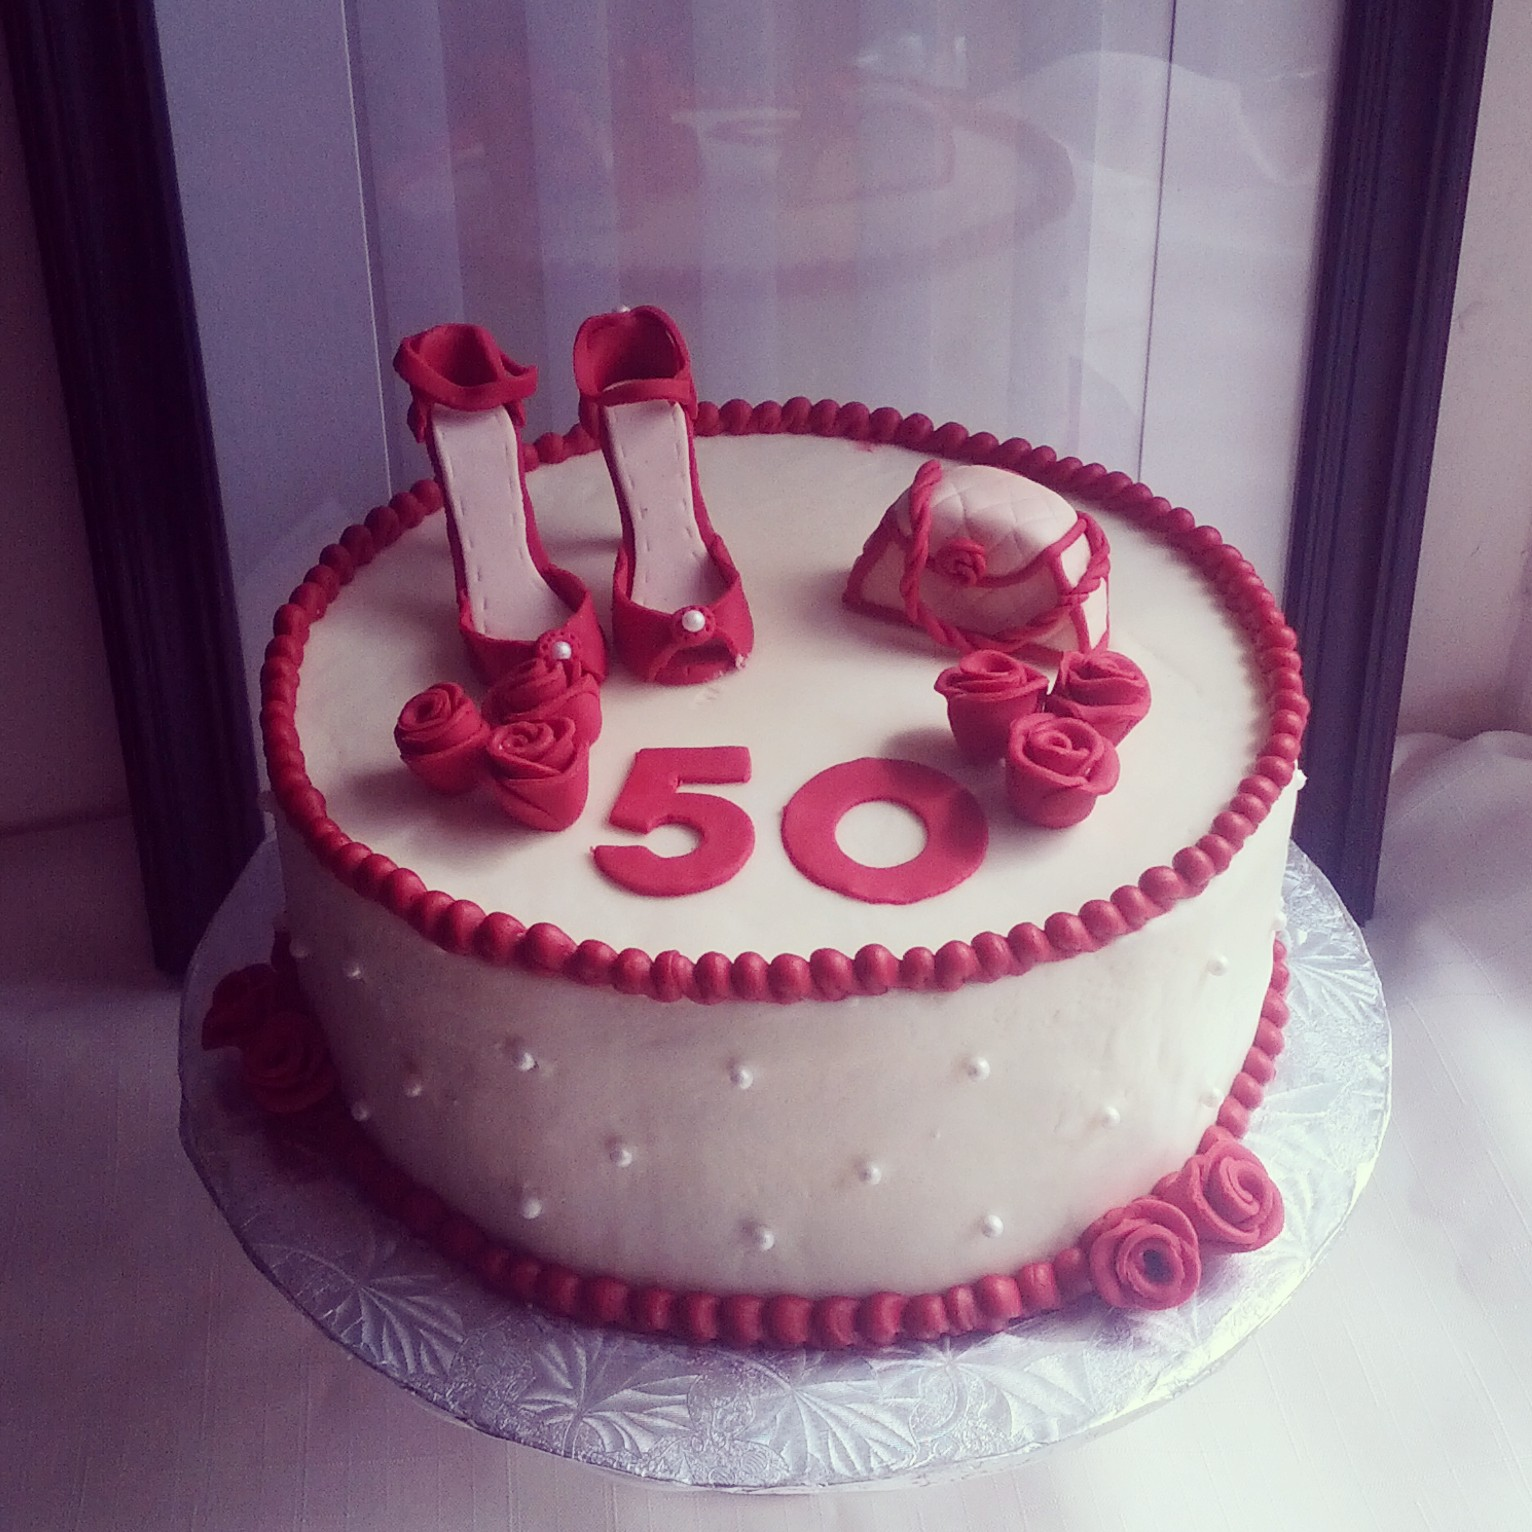 Red Shoes Purse 50th Birthday Cake